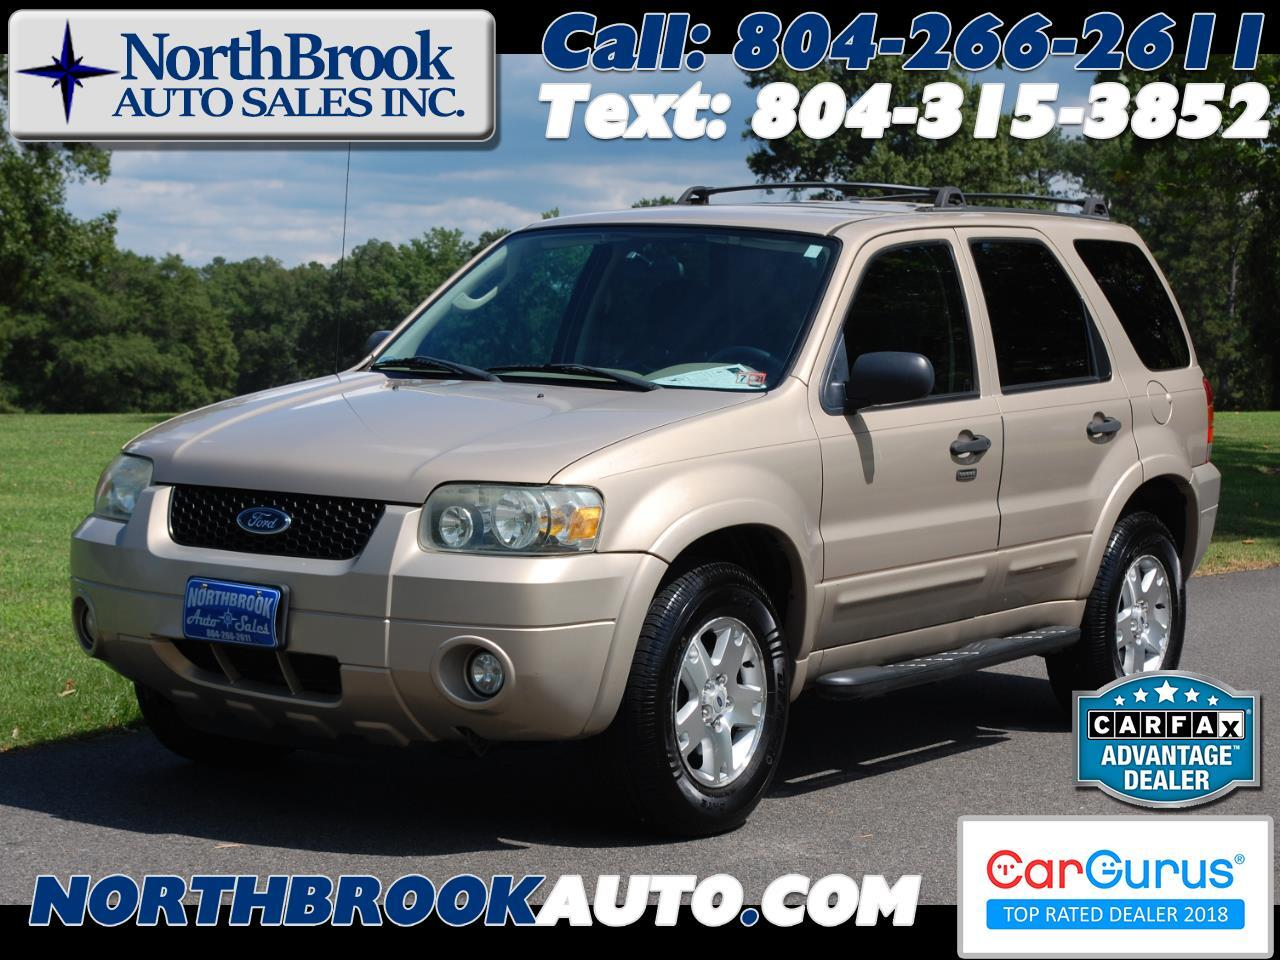 Ford Escape 4WD 4dr V6 Auto XLT 2007